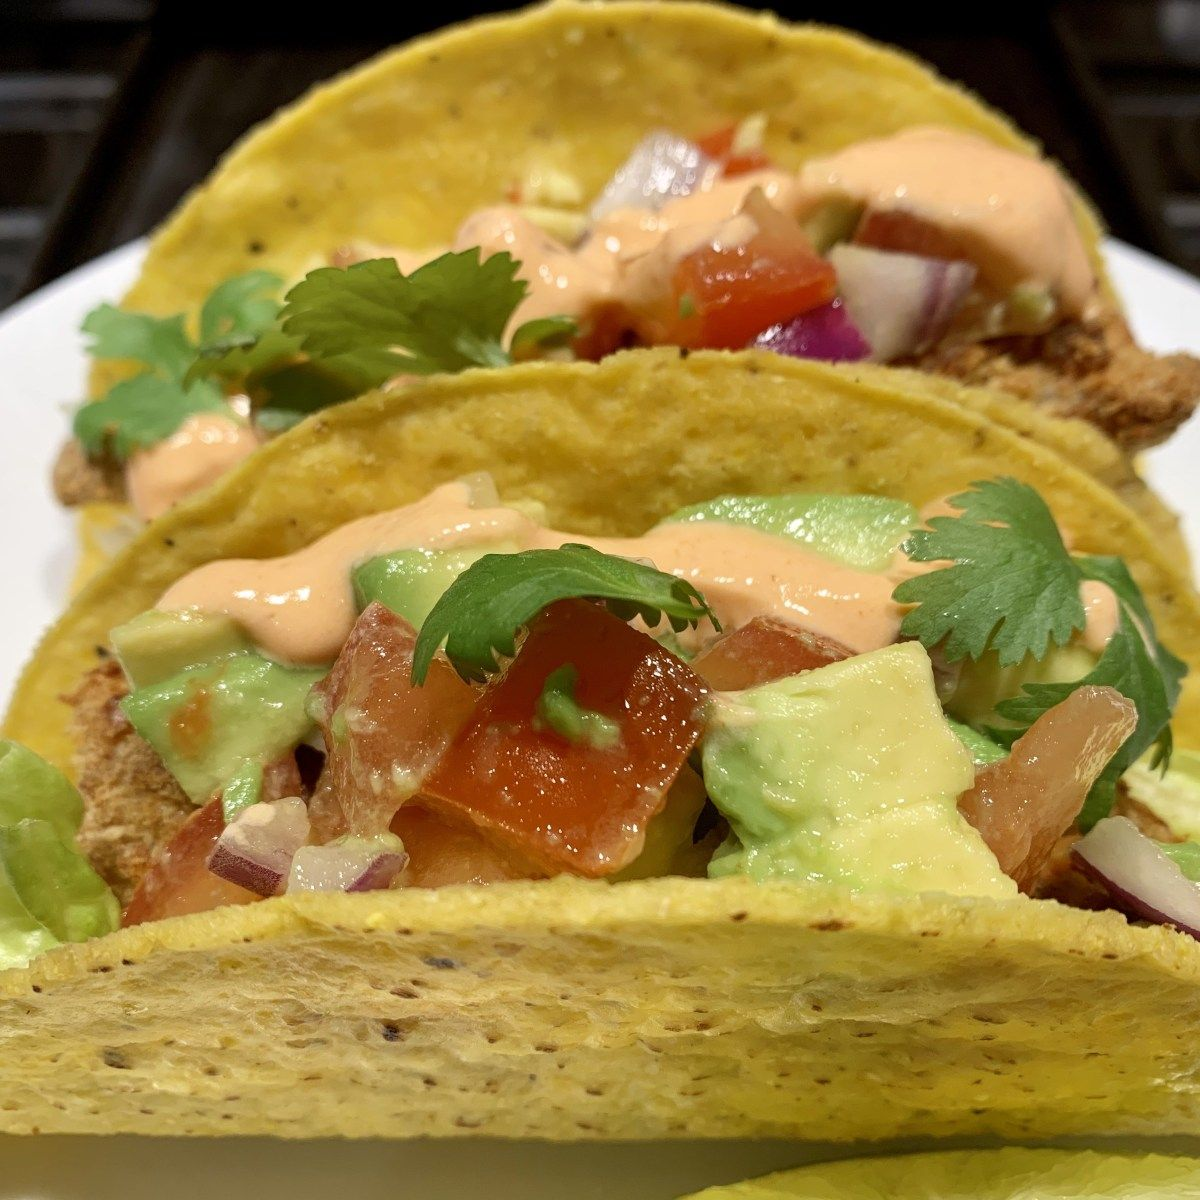 Get Your Healthy On with These Spicy Air Fryer Fish Tacos